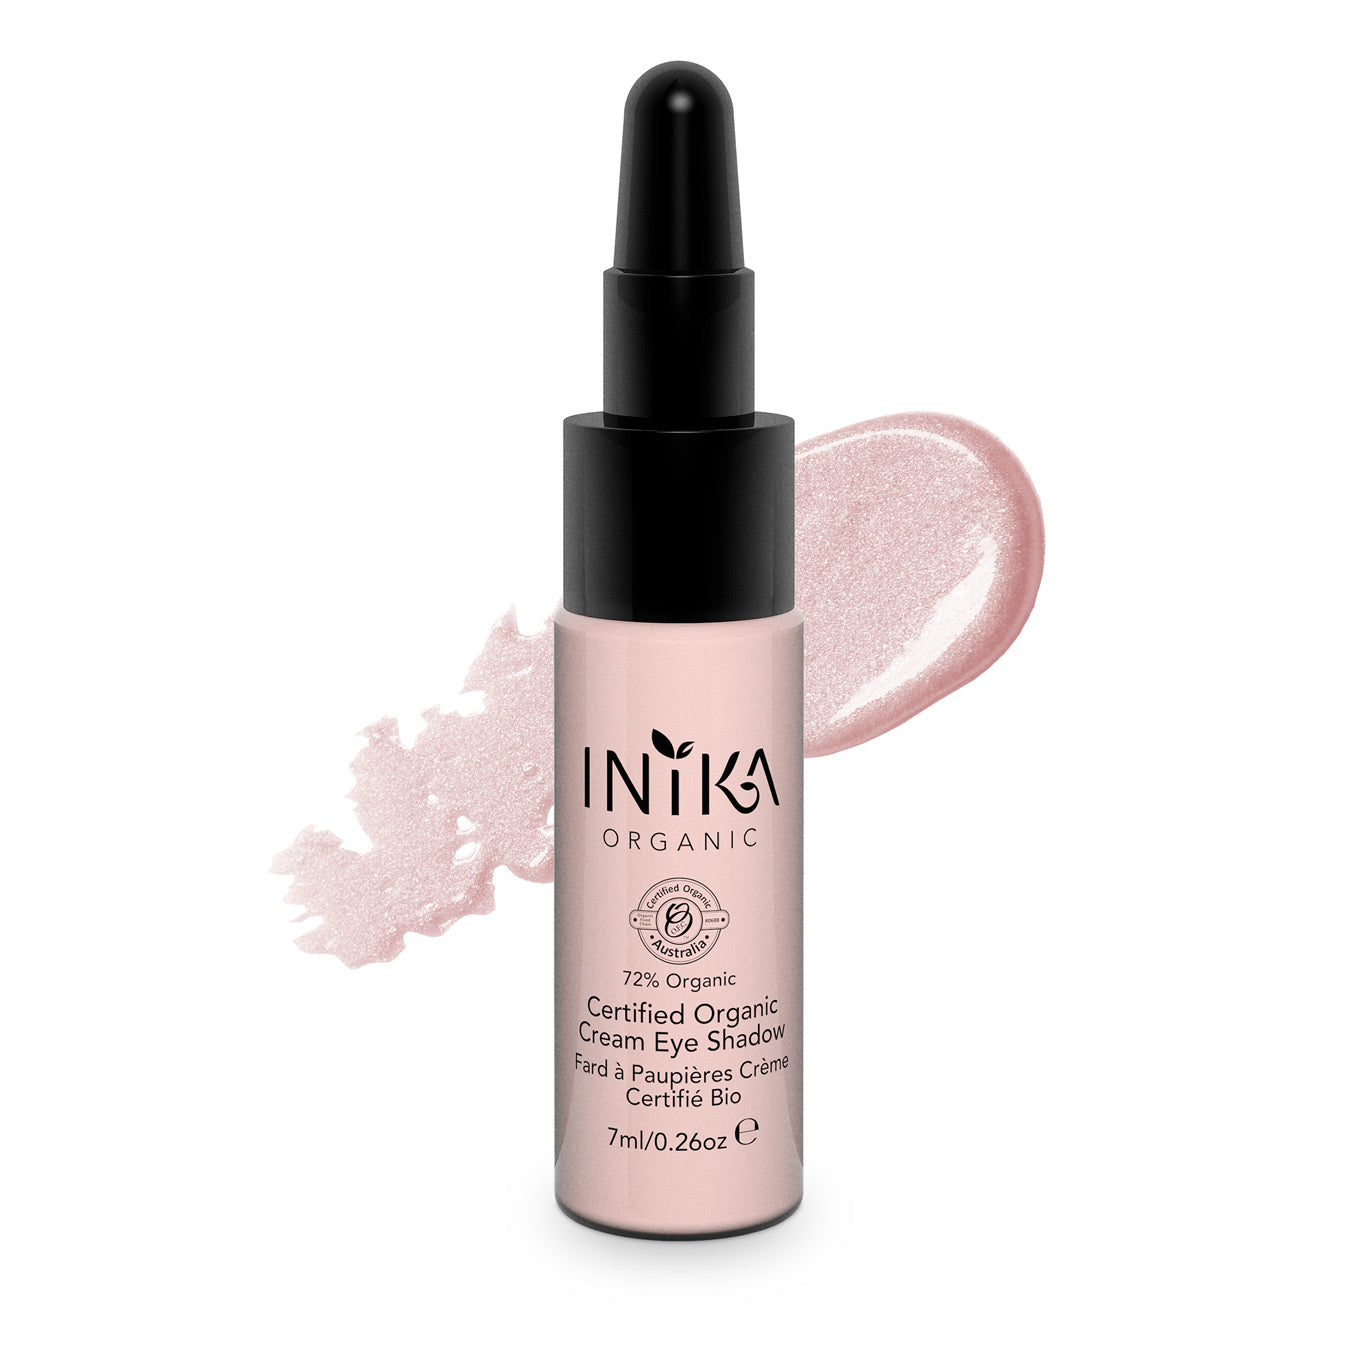 INIKA Certified Organic Cream Eye Shadow